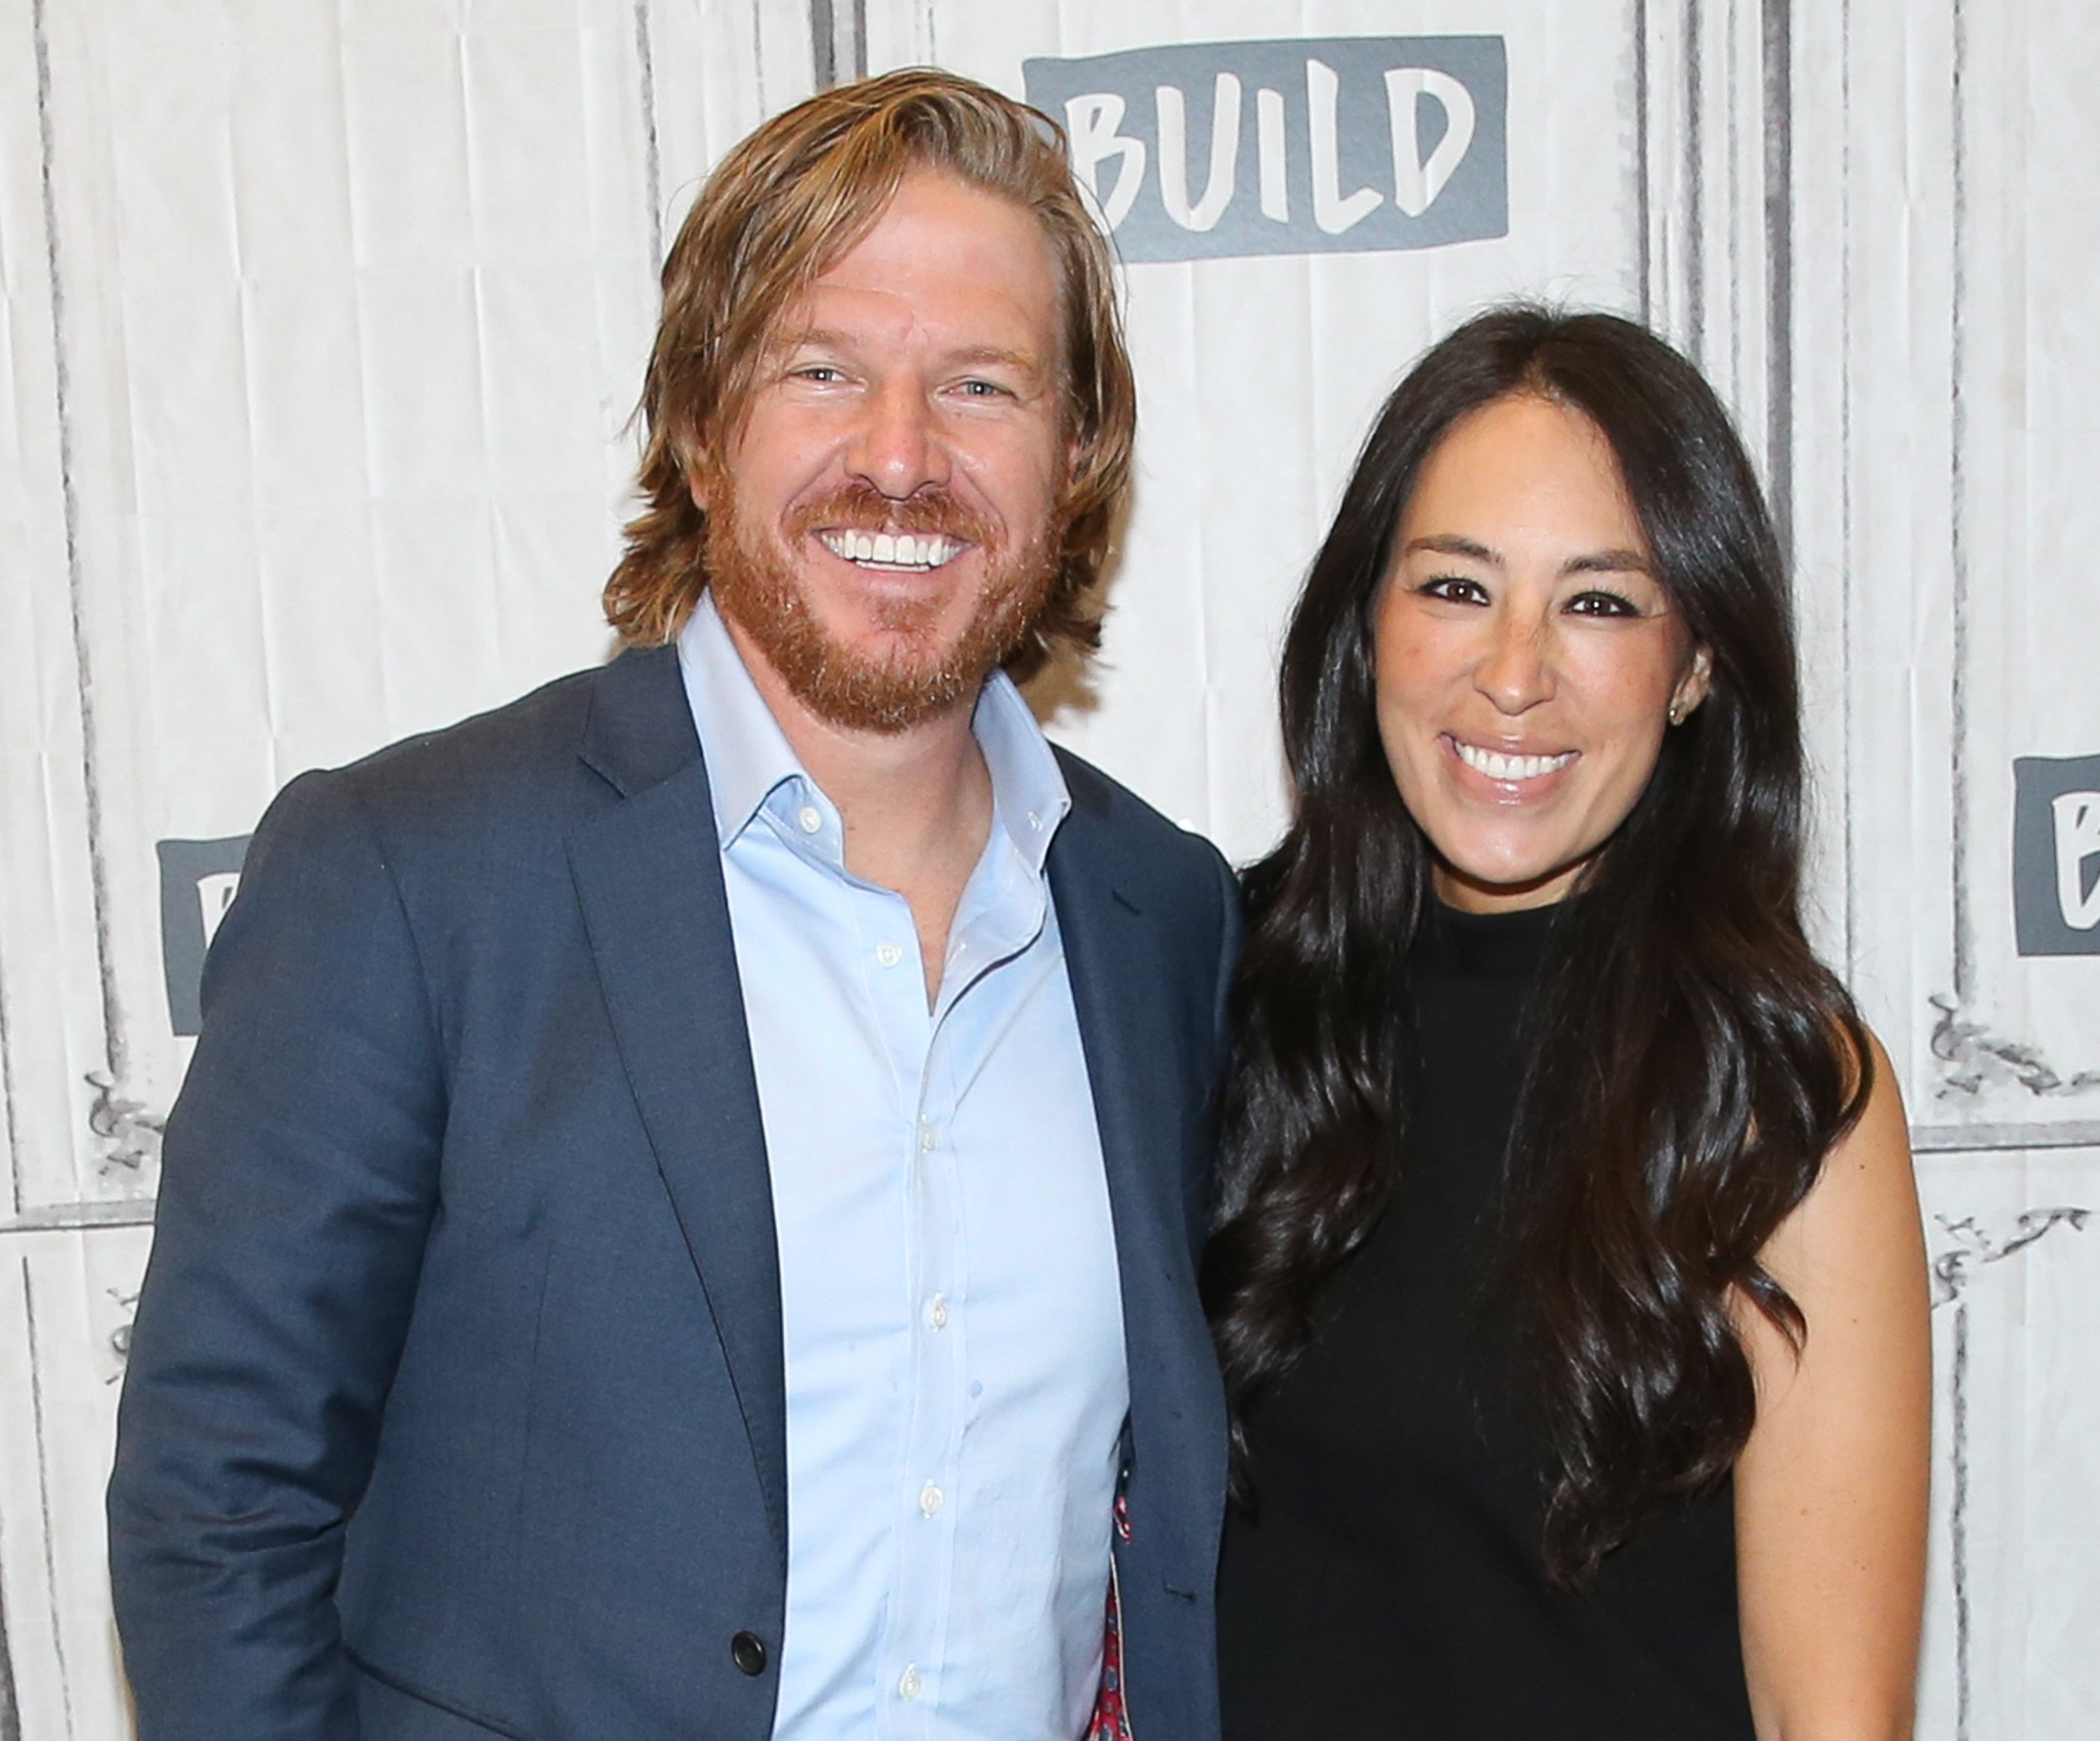 Chip Gaines and Joanna Gaines attend the Build Series at Build Studio on October 18, 2017 | Photo: GettyImages